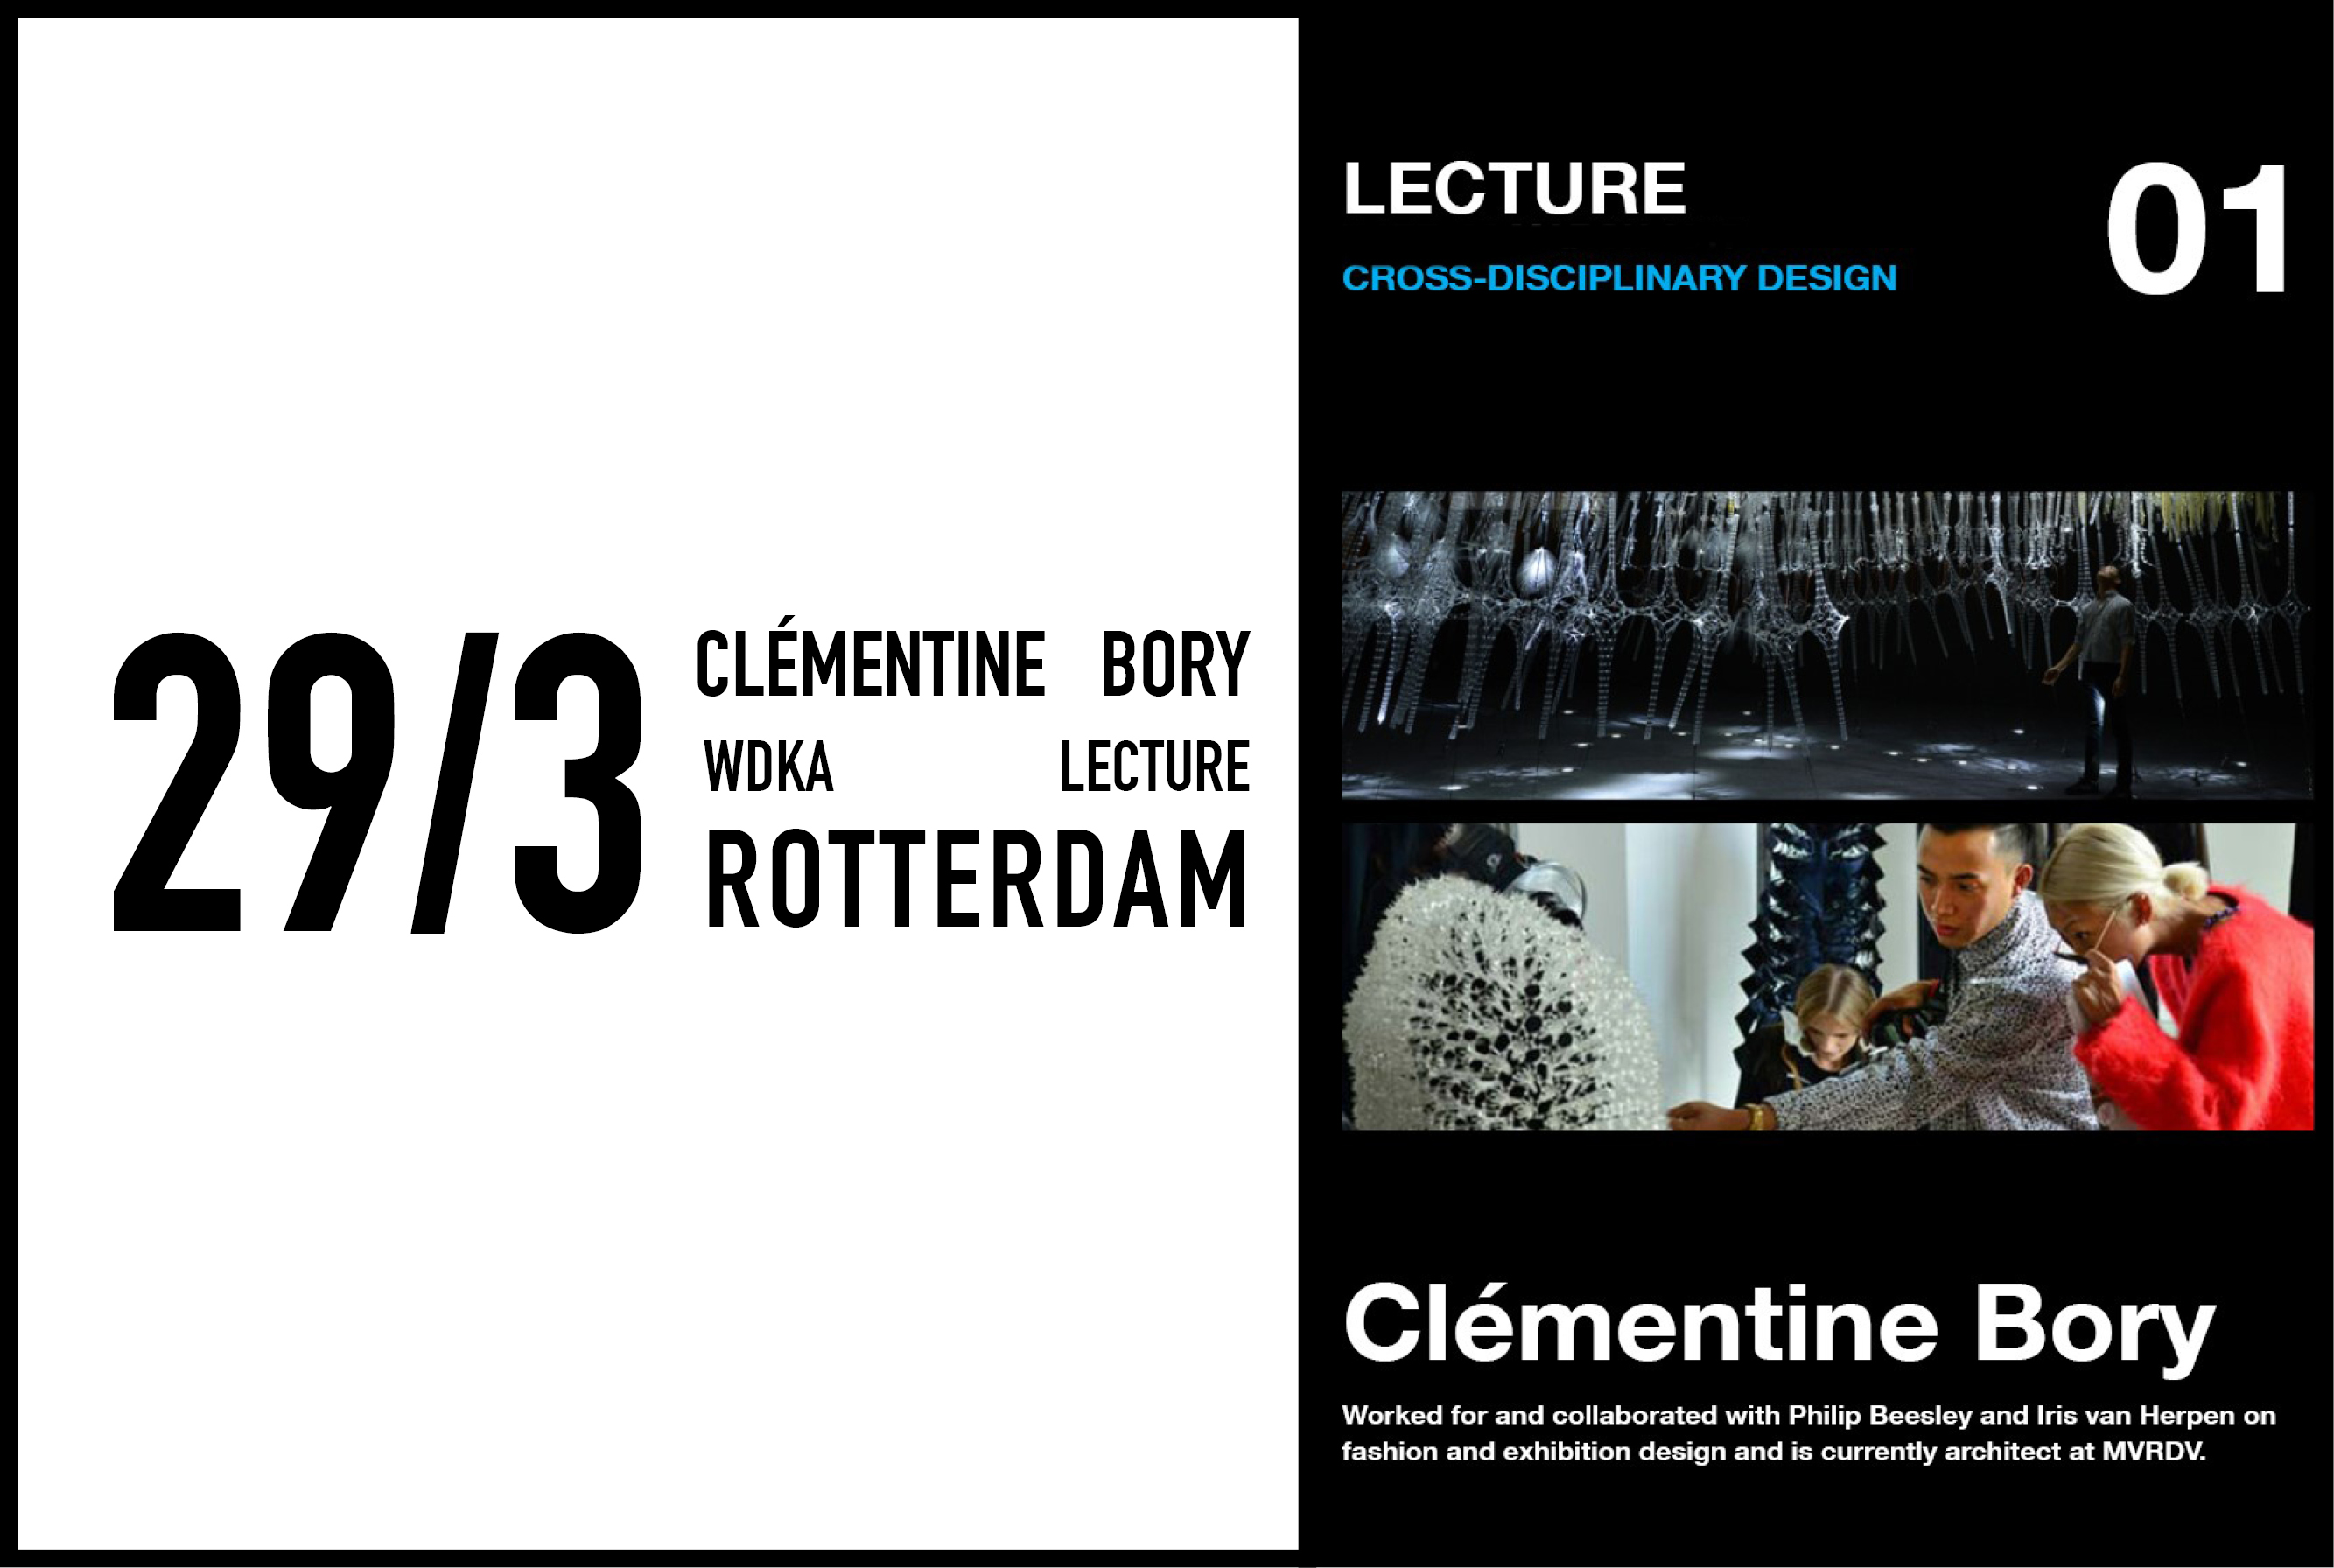 Clémentine Bory to give a lecture on fashion and exhibition design, 29 March 2017